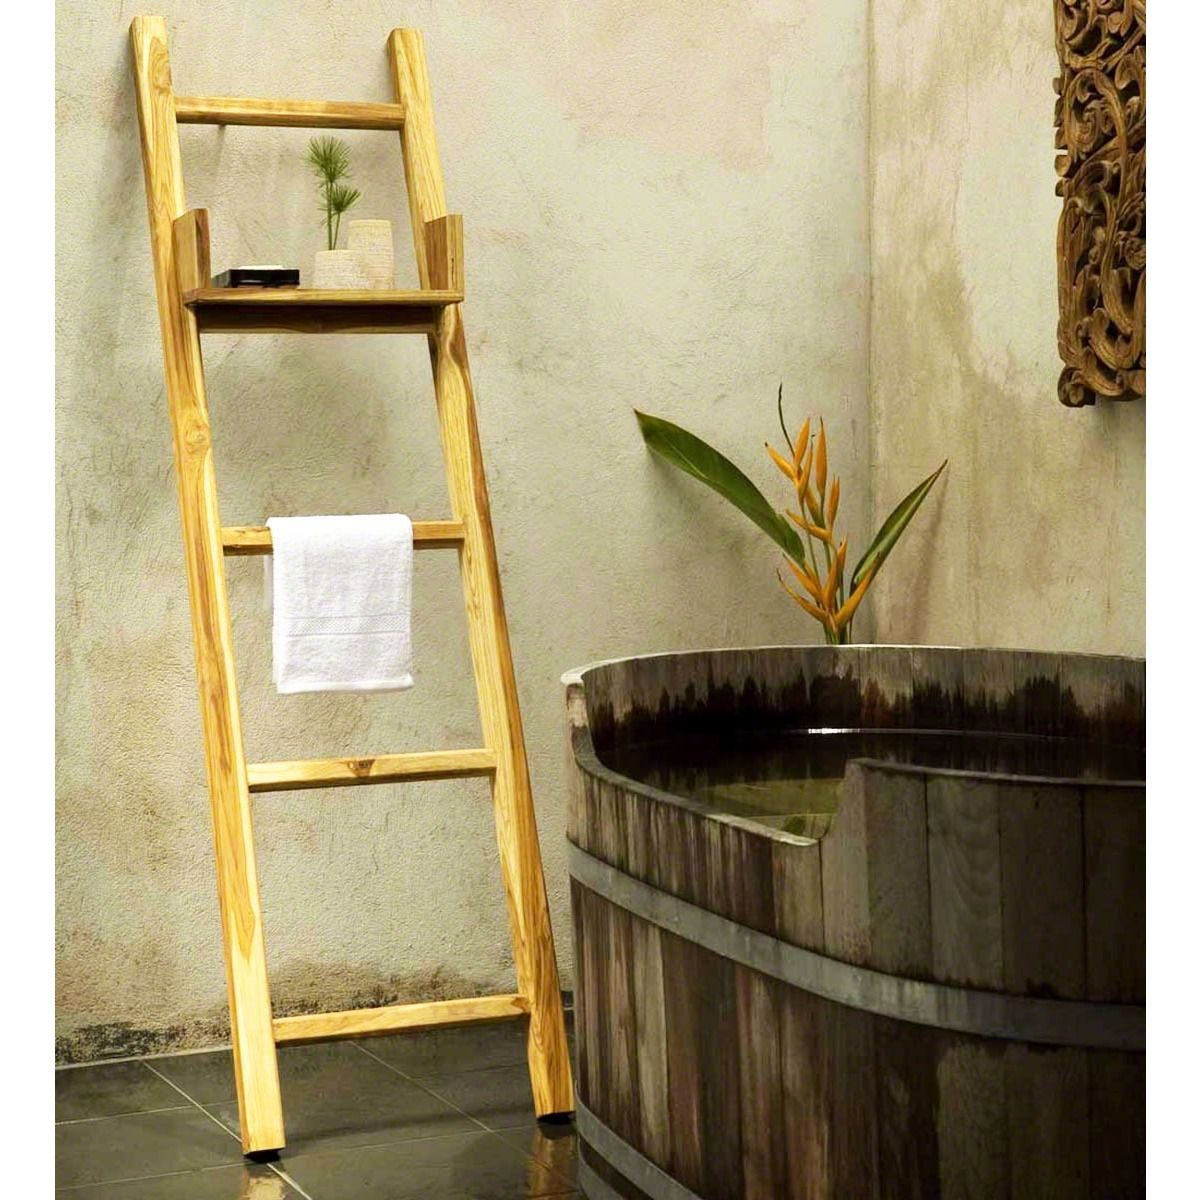 Our farmed teak ladder is the ultimate ecochoice made from leftover